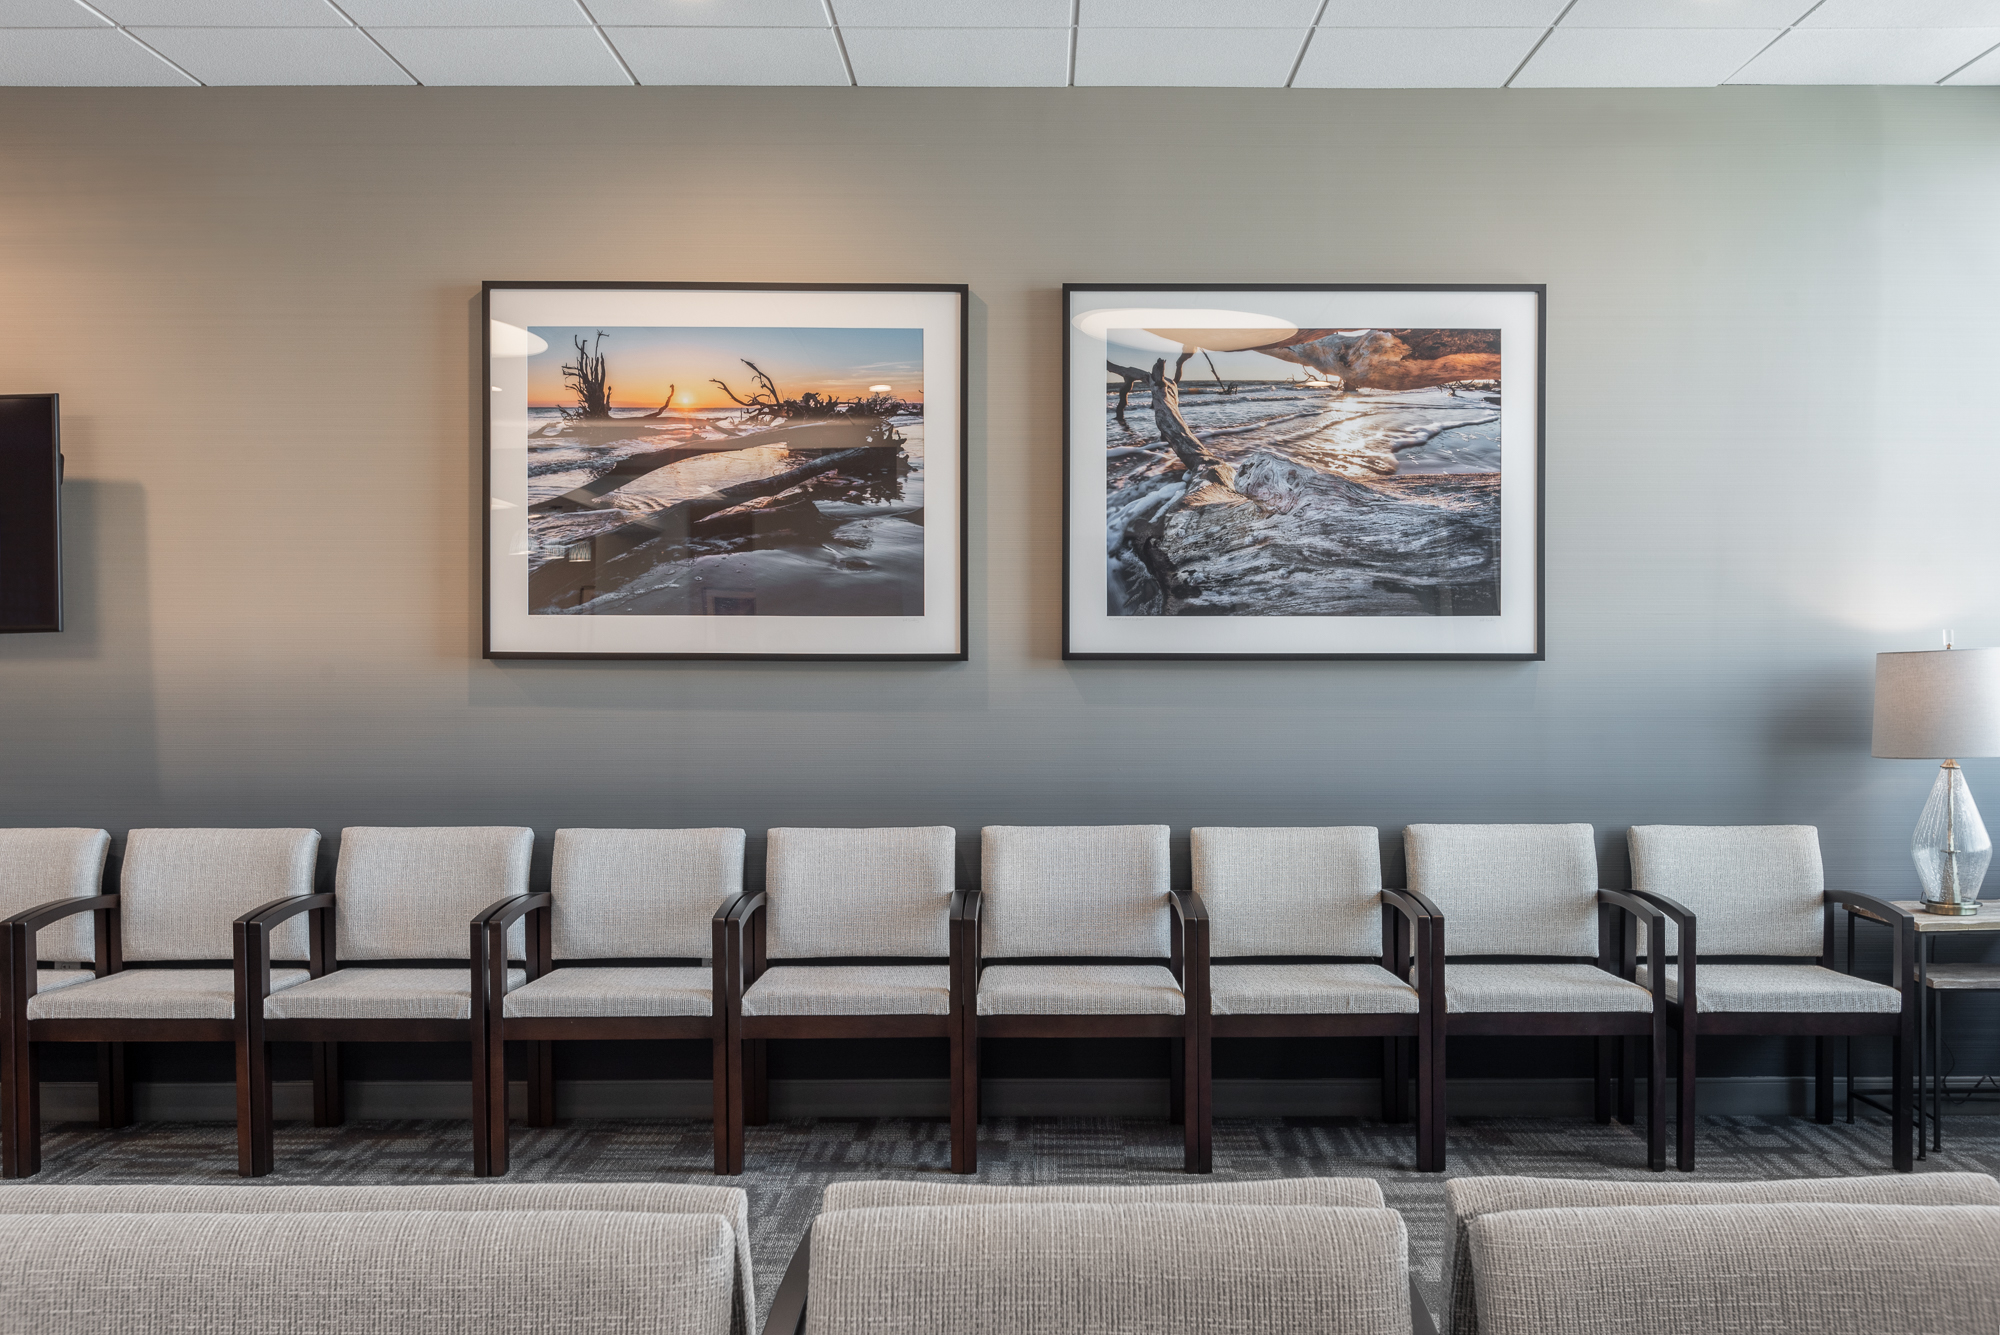 Micamy Design Studio_Interior Design_Pediatric Eye Consultants_North Florida_Riverside_Ophthalmology_Strabismus_Office__Renovation_Patcraft_Seating_Waiting_Lounge_Bariatric Chair_Stance.jpg